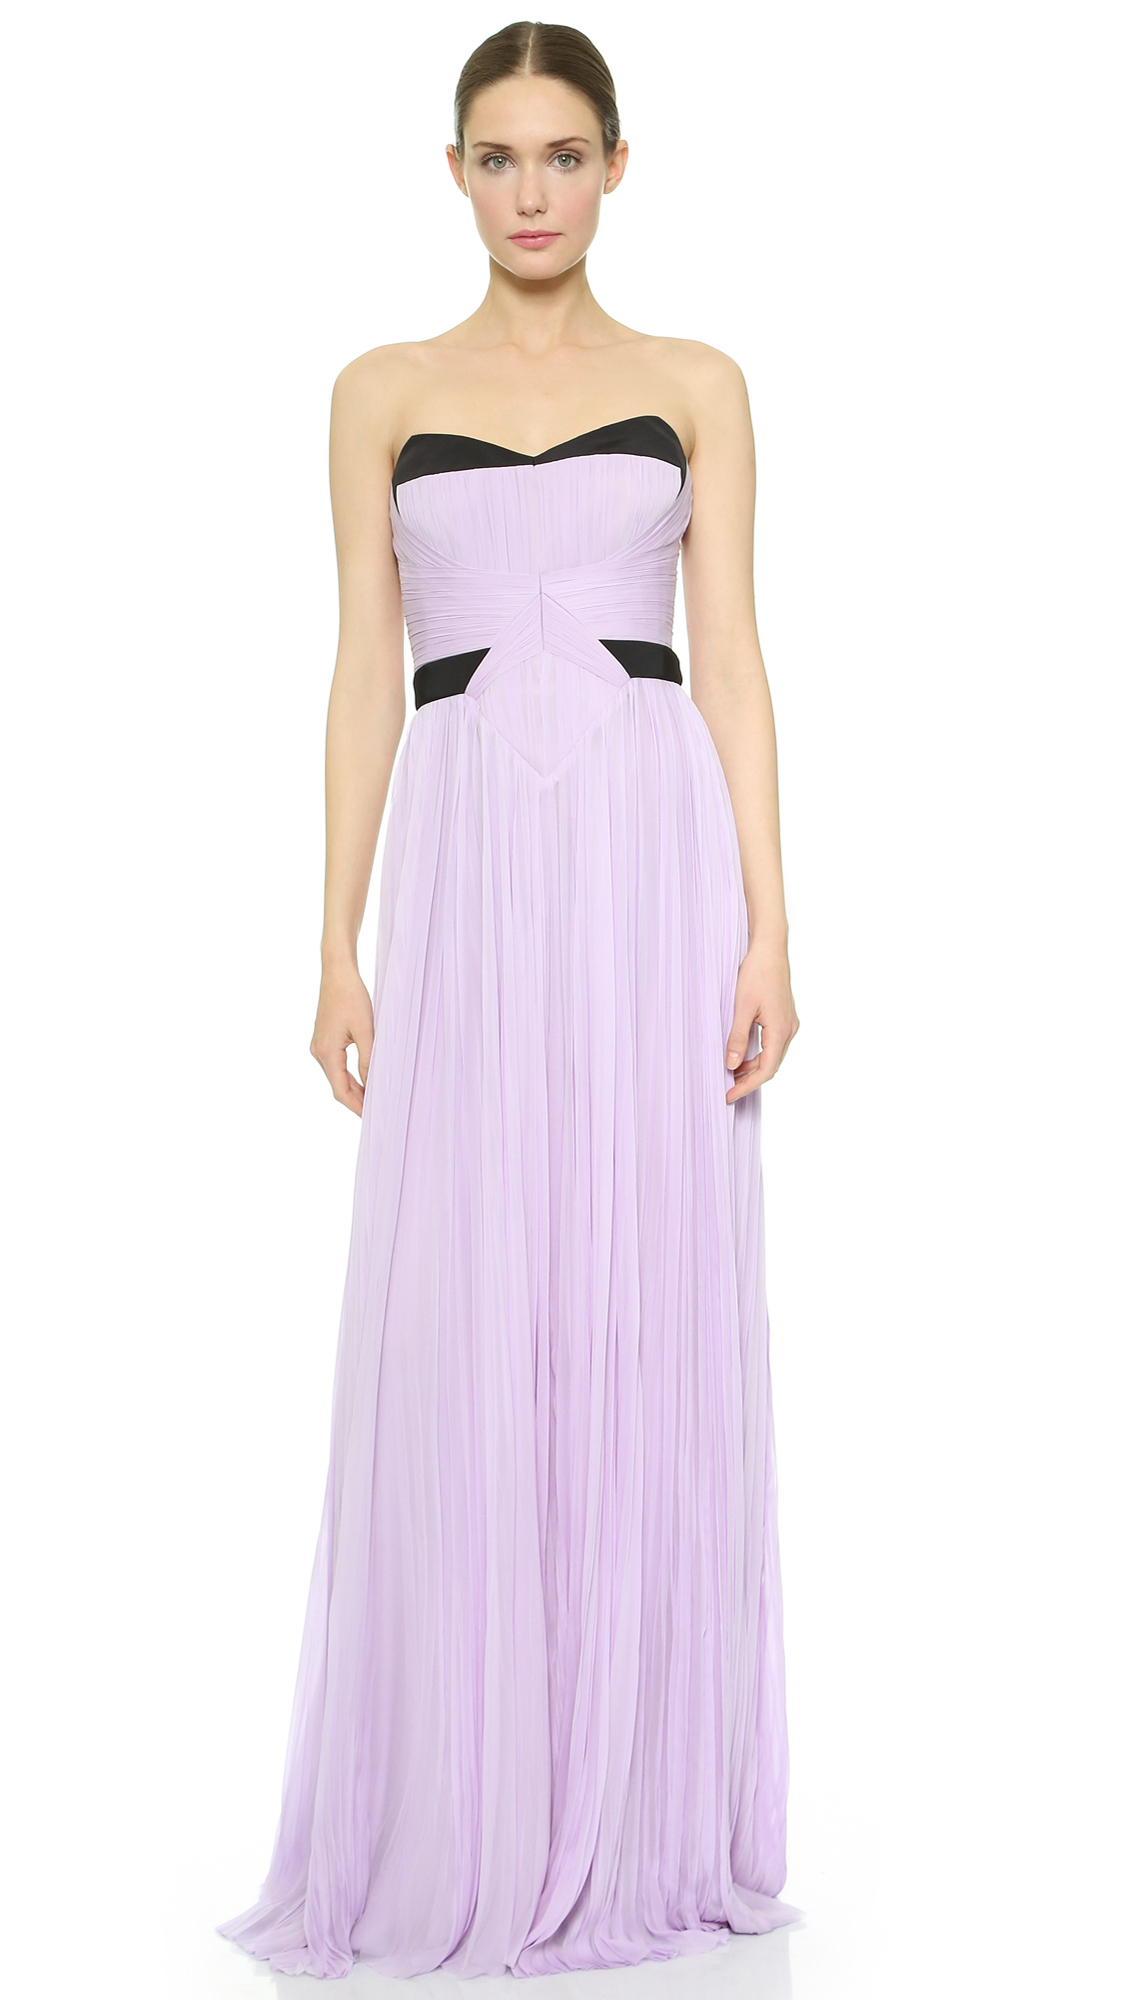 Lyst - J. Mendel Strapless Pleated Gown in Purple